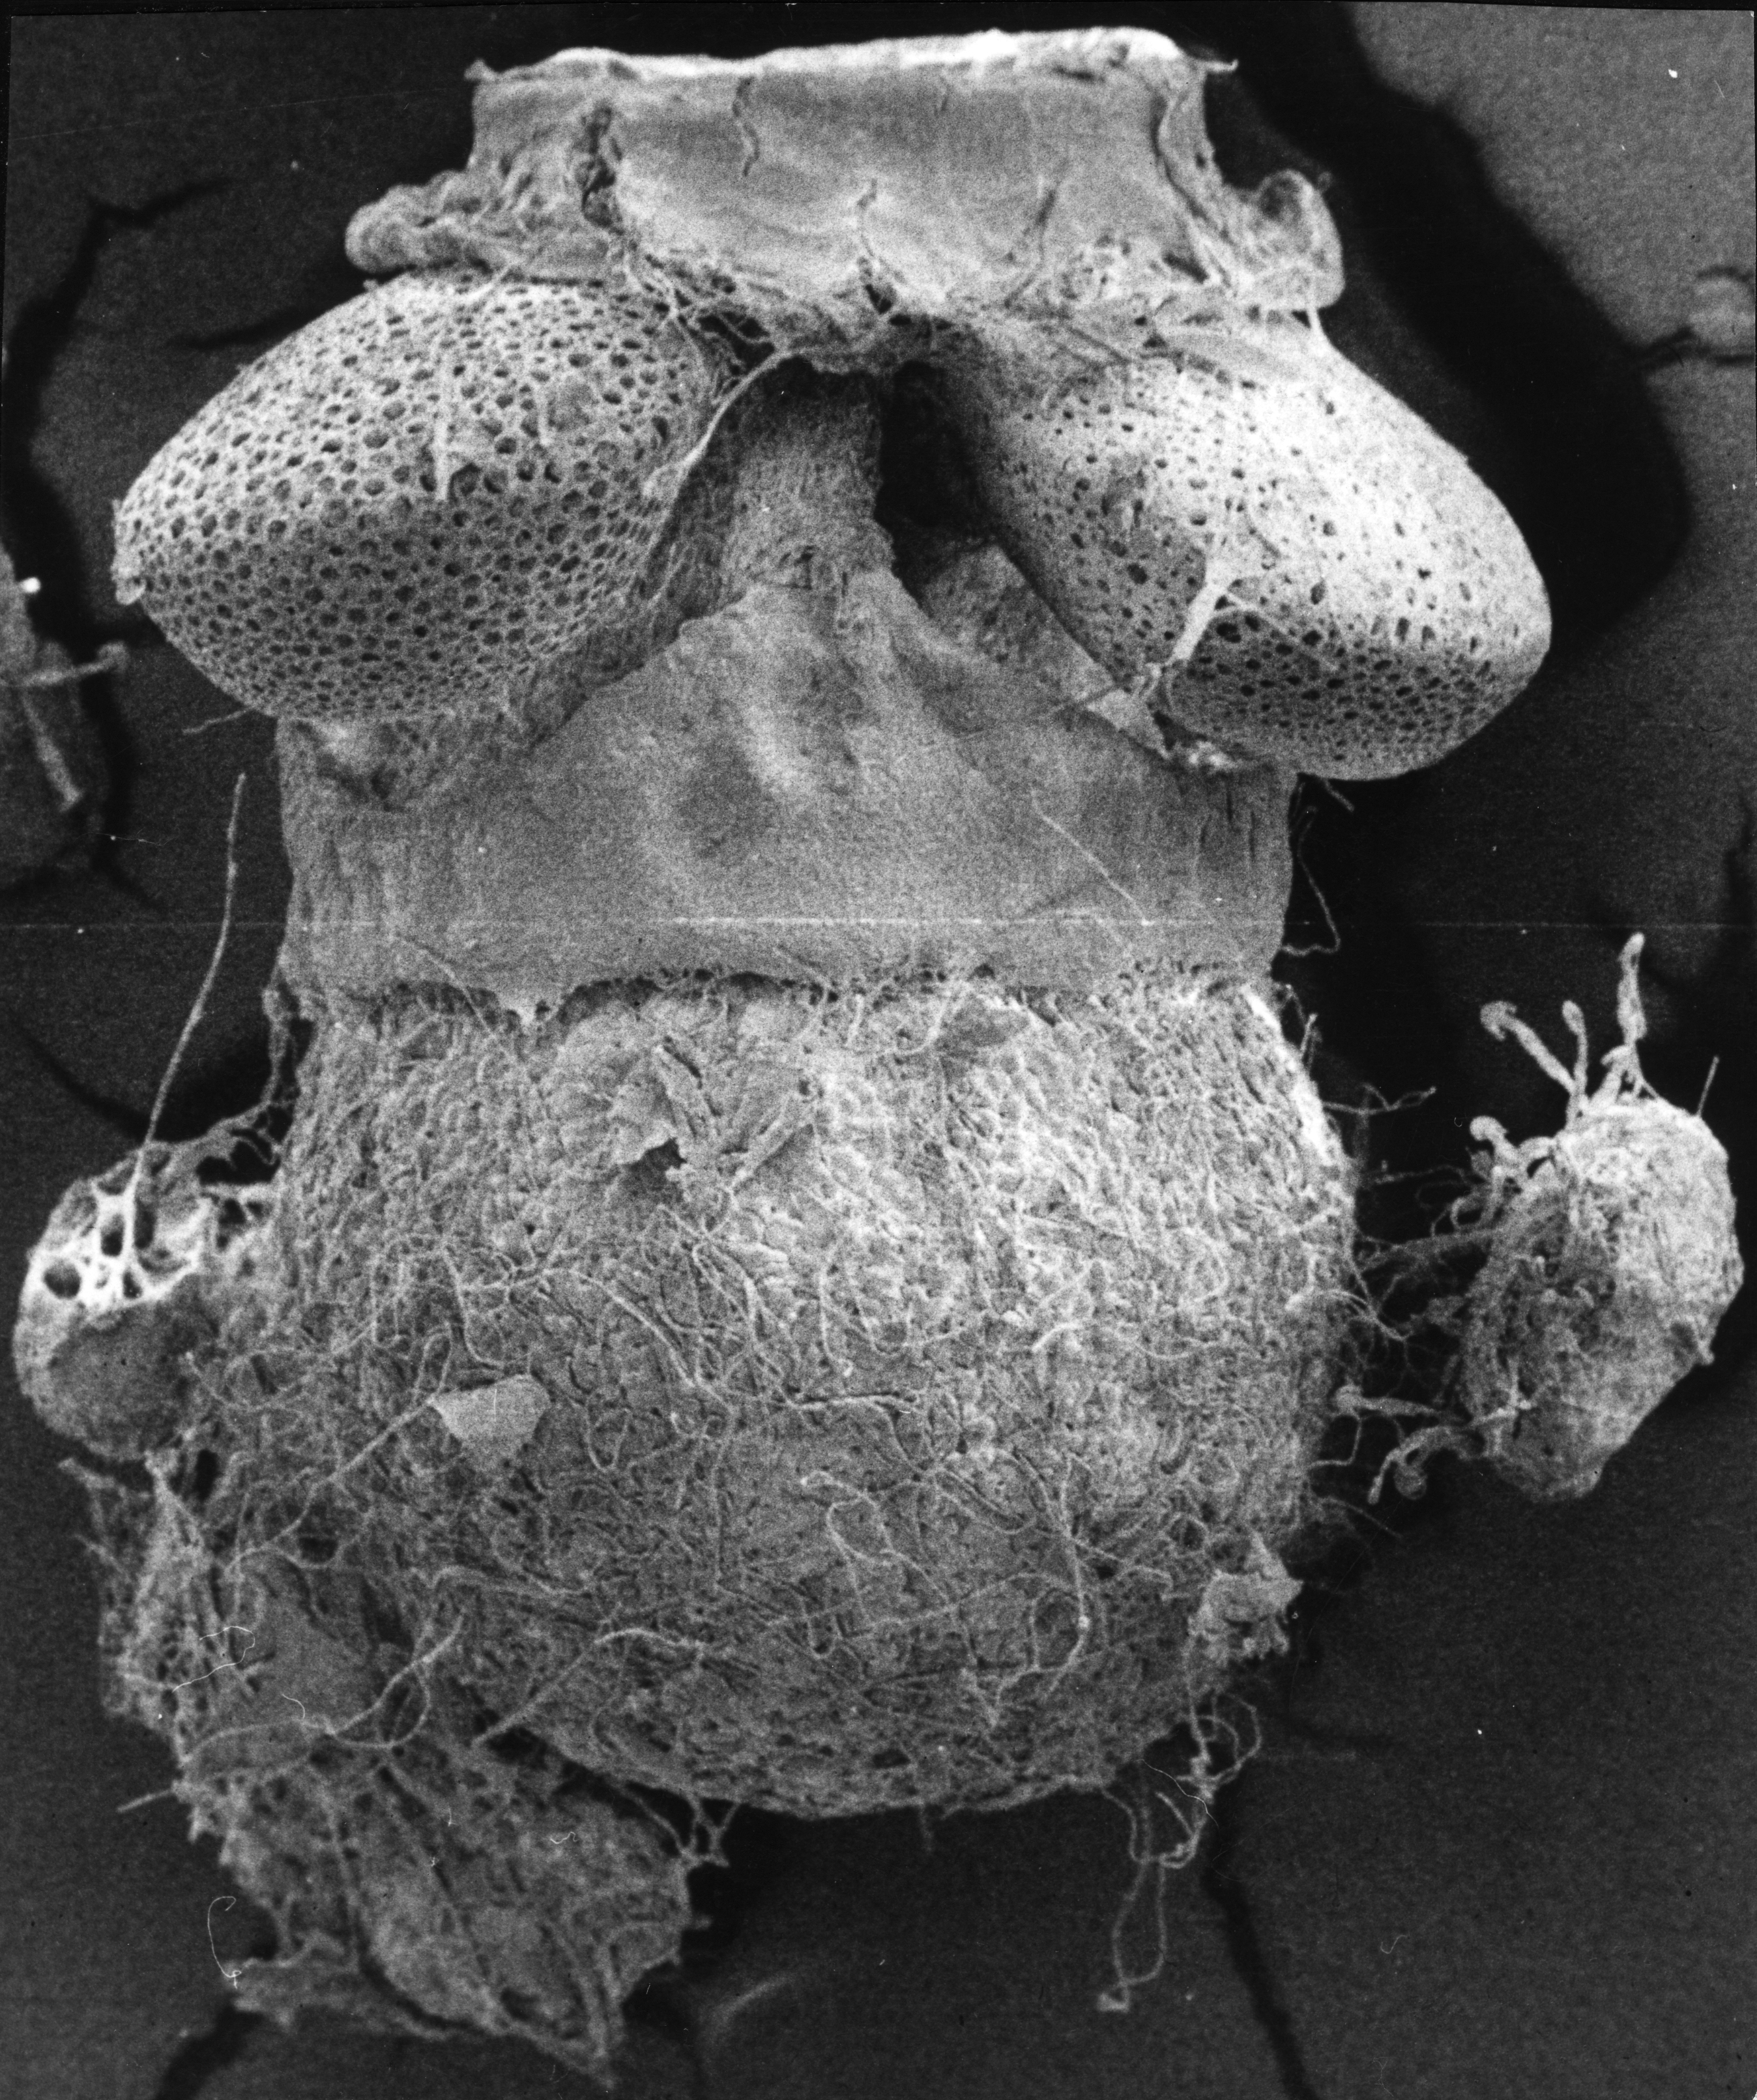 azolla megaspore and massulae postglacial galapagos islands sem 1.jpg